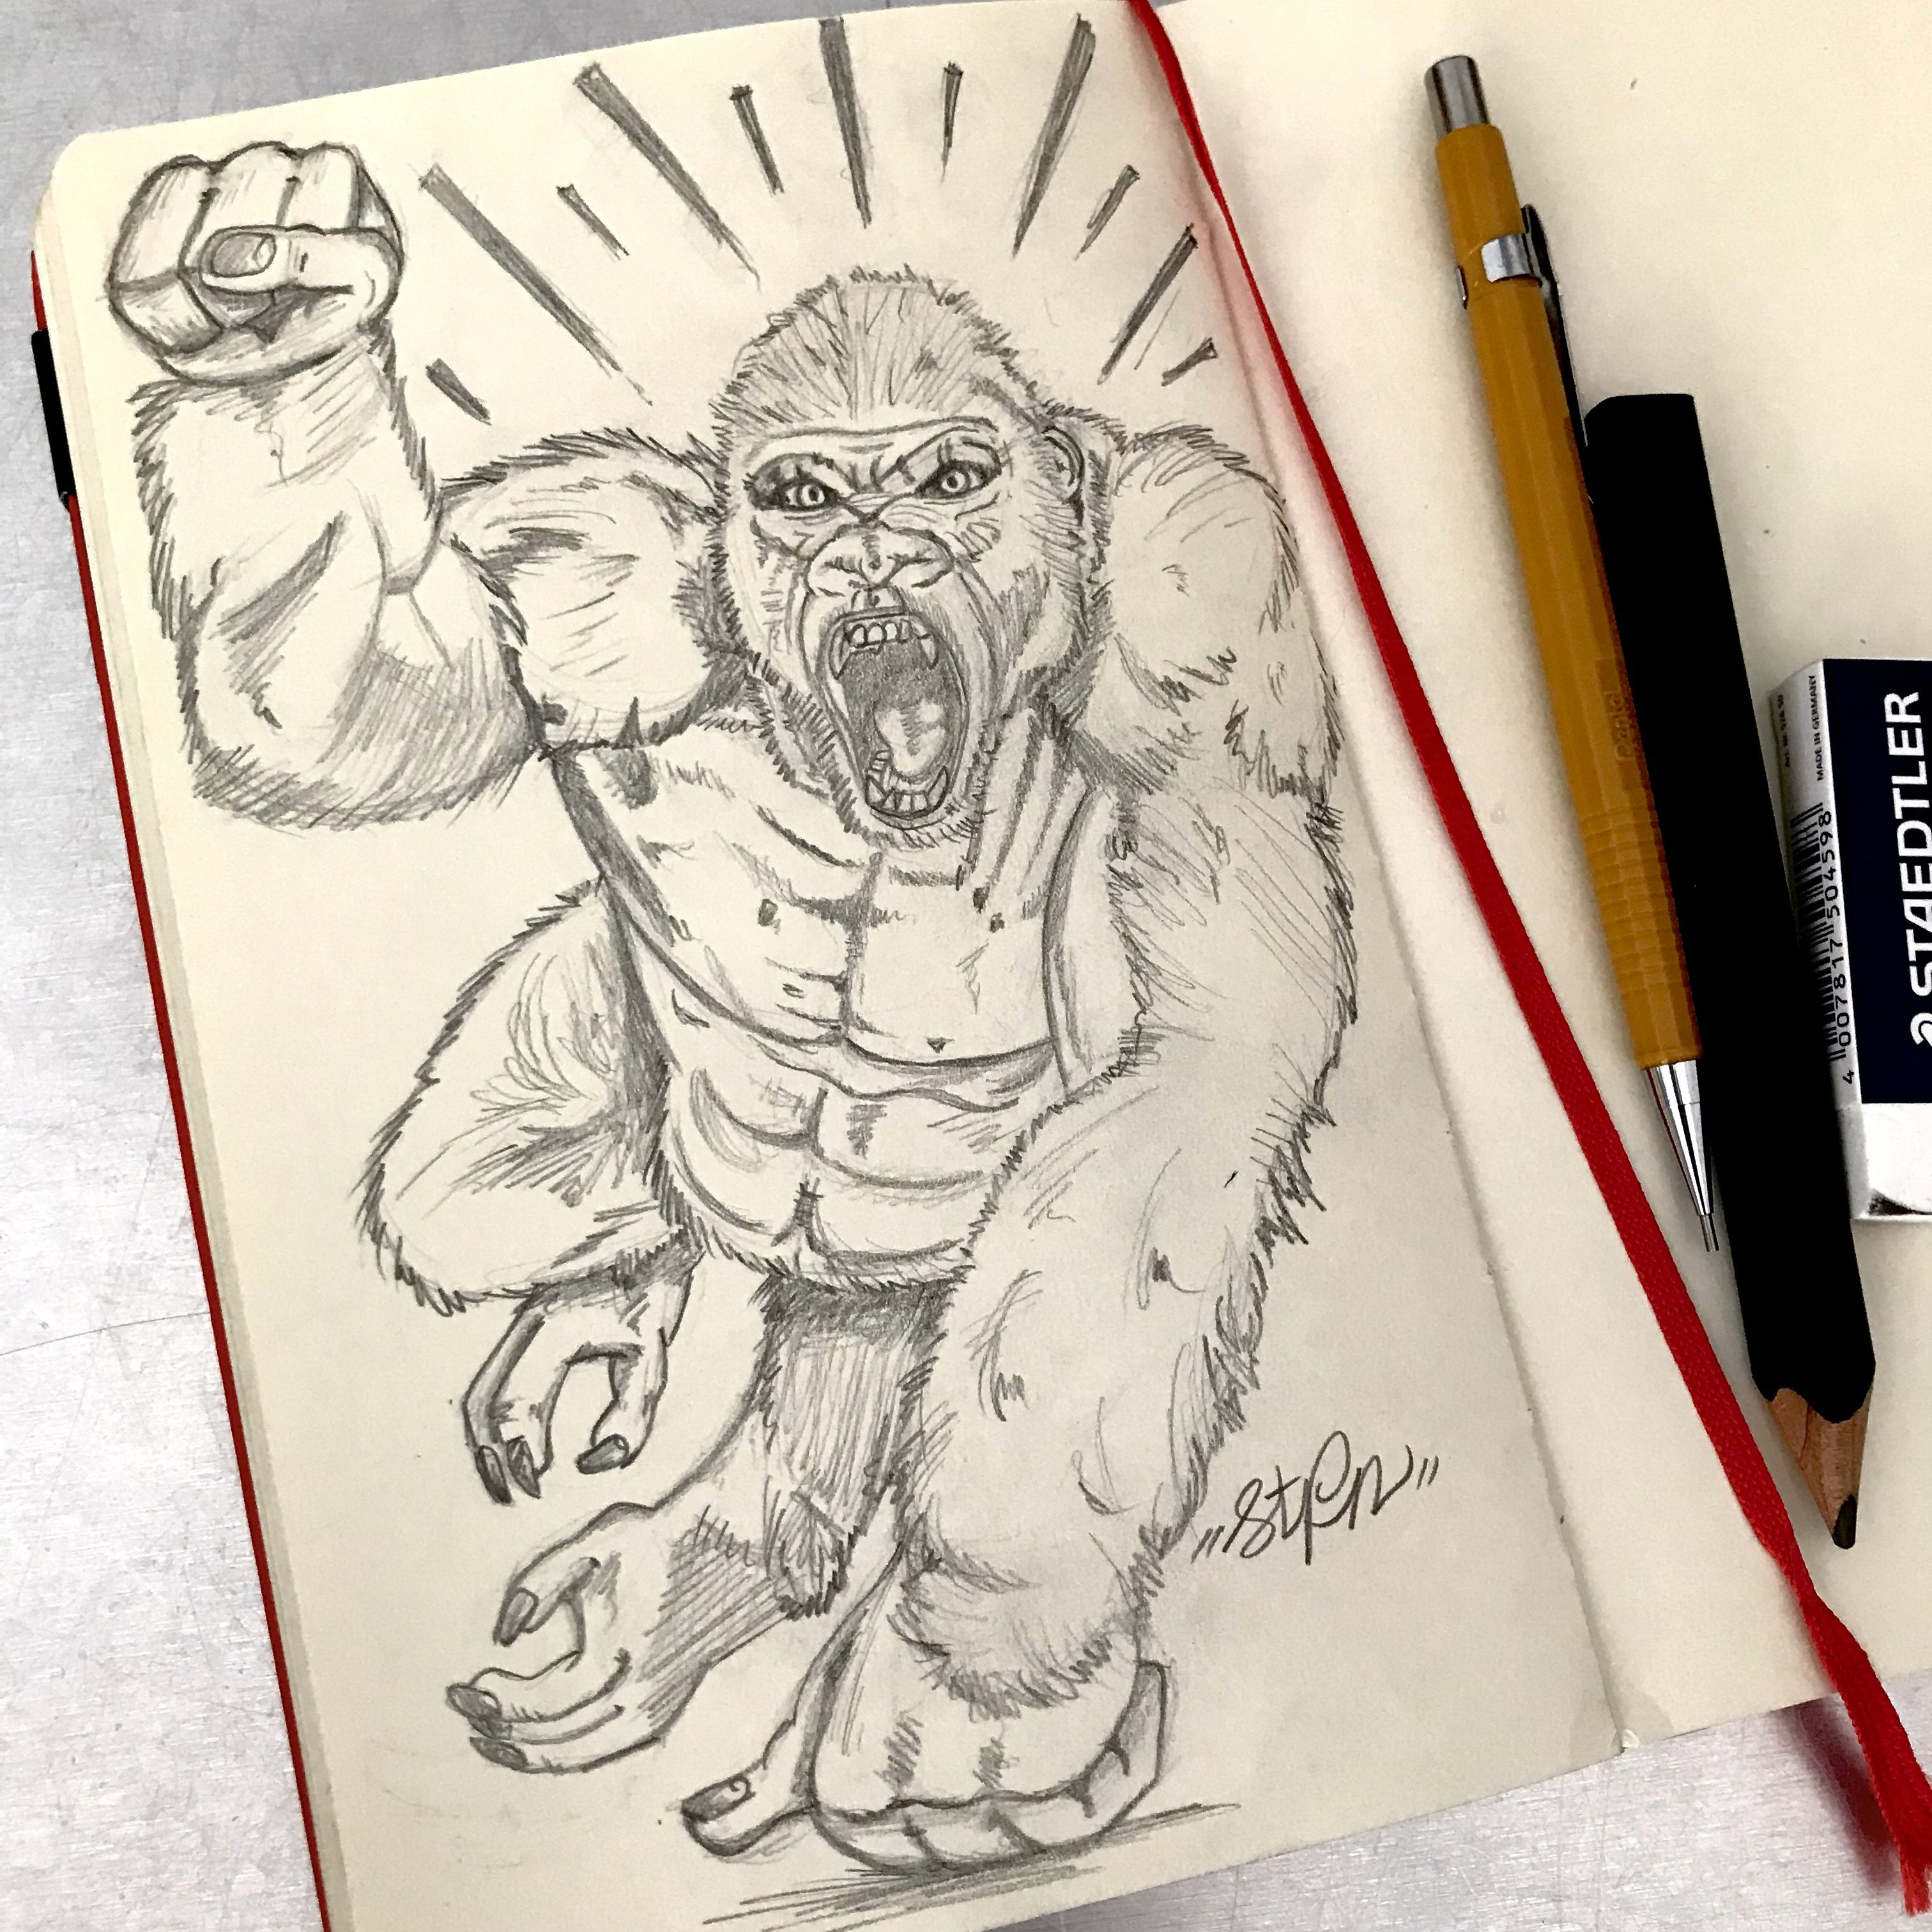 Sketch Of The Albino Gorilla From The Movie Rampage